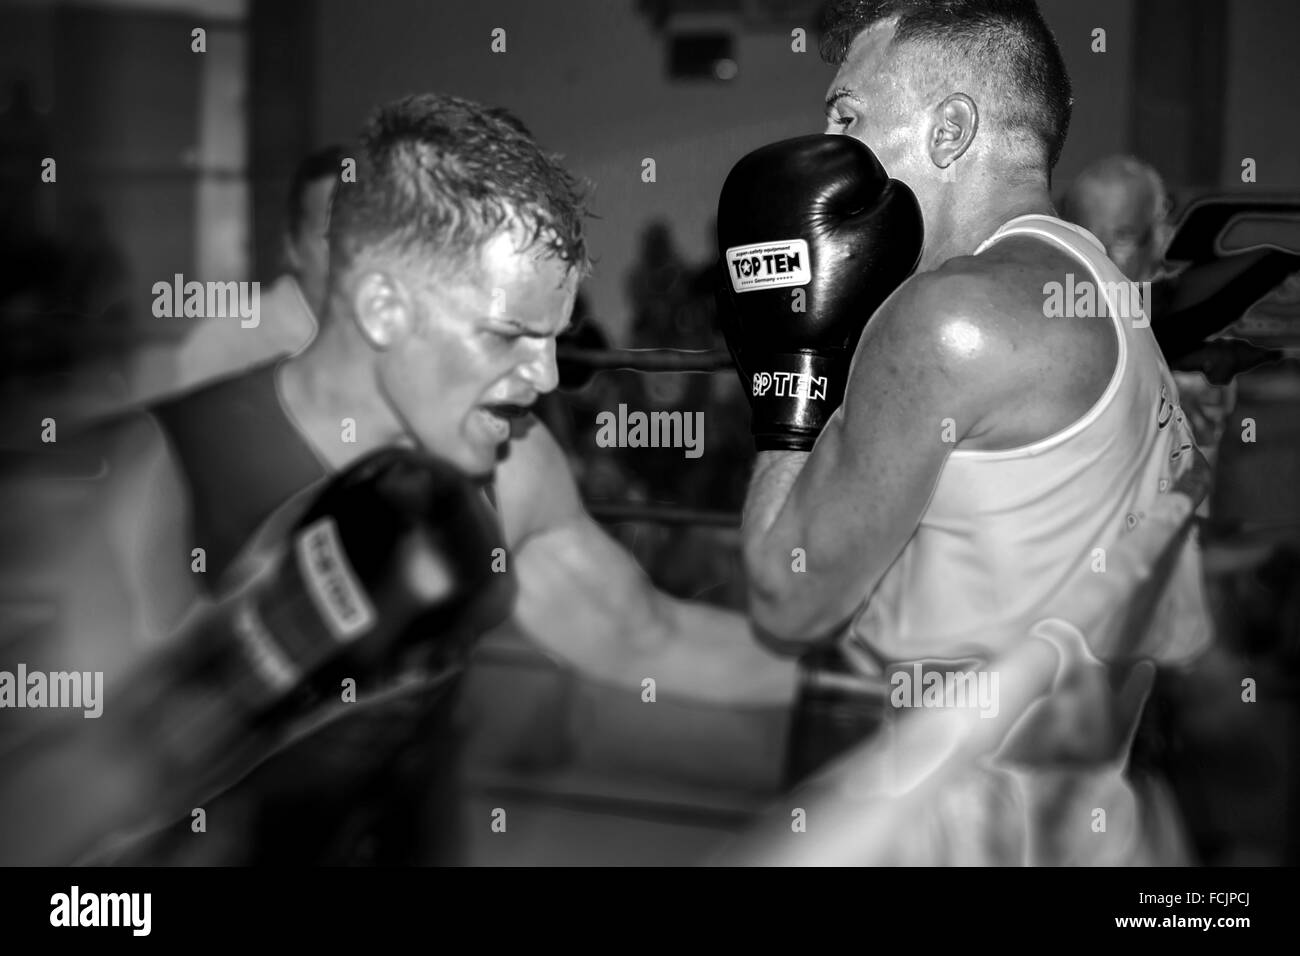 A low blow in a boxing match between two young men Stock Photo